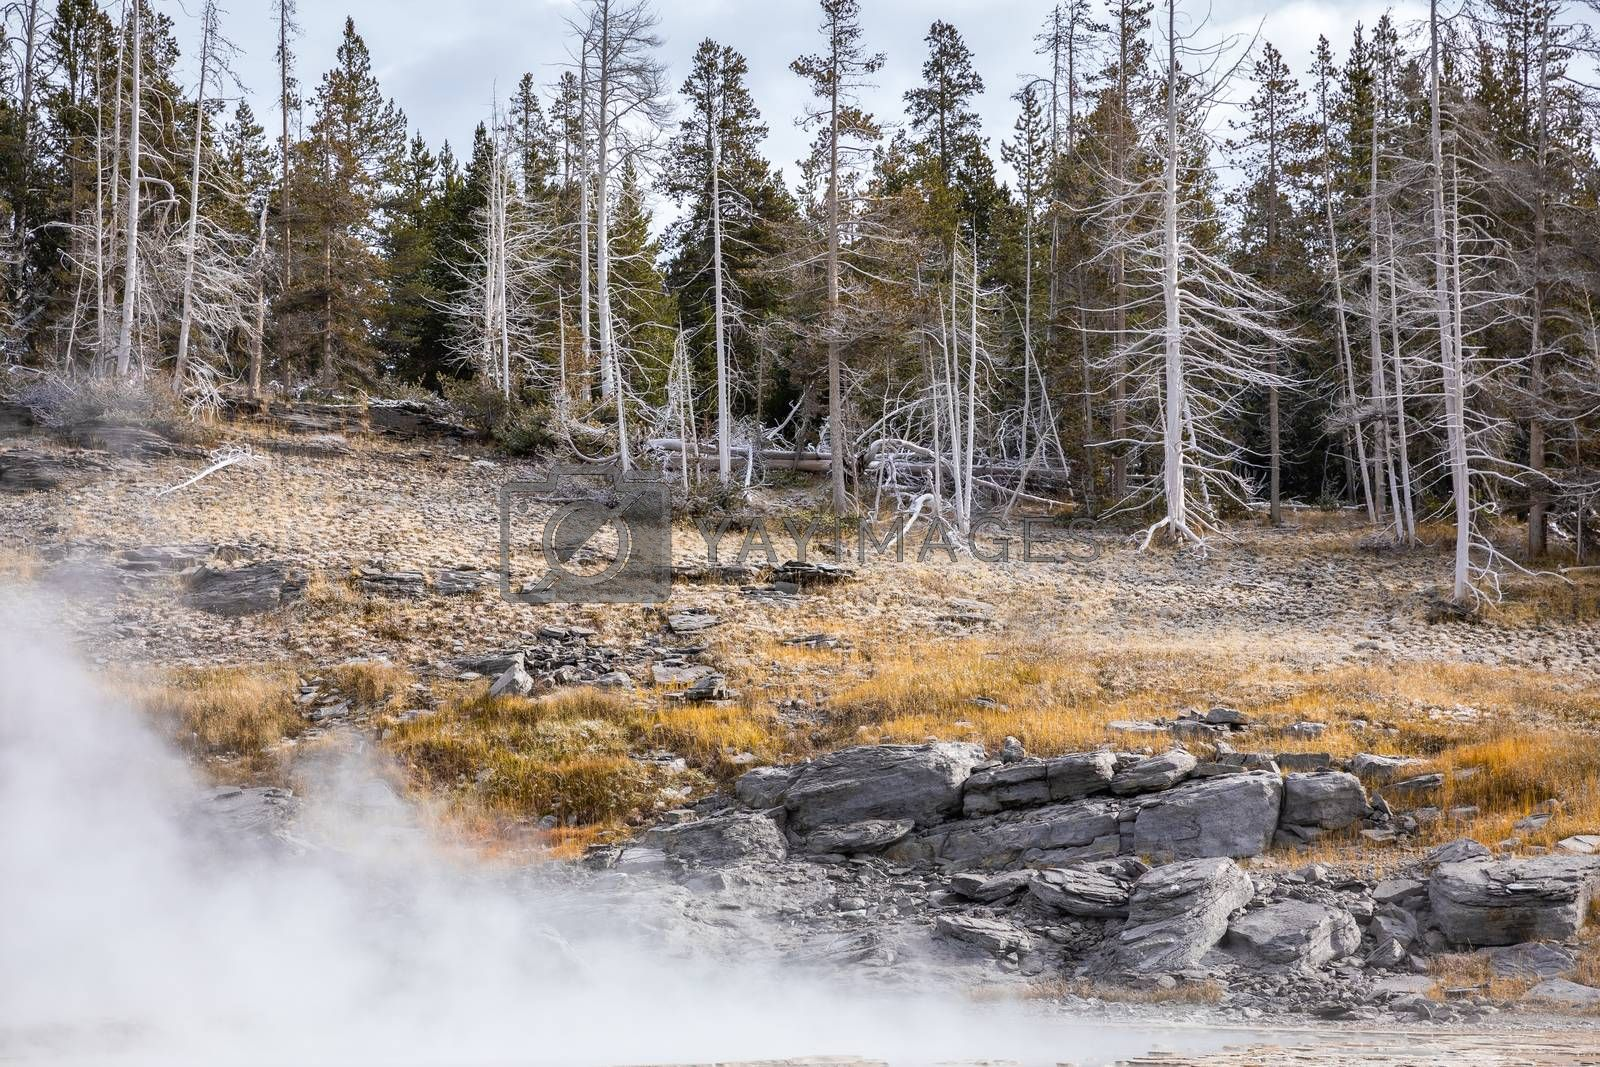 Dead pine trees on rock hill inside hot environment of geyser basins in Yellowstone National Park, Wyoming, USA.